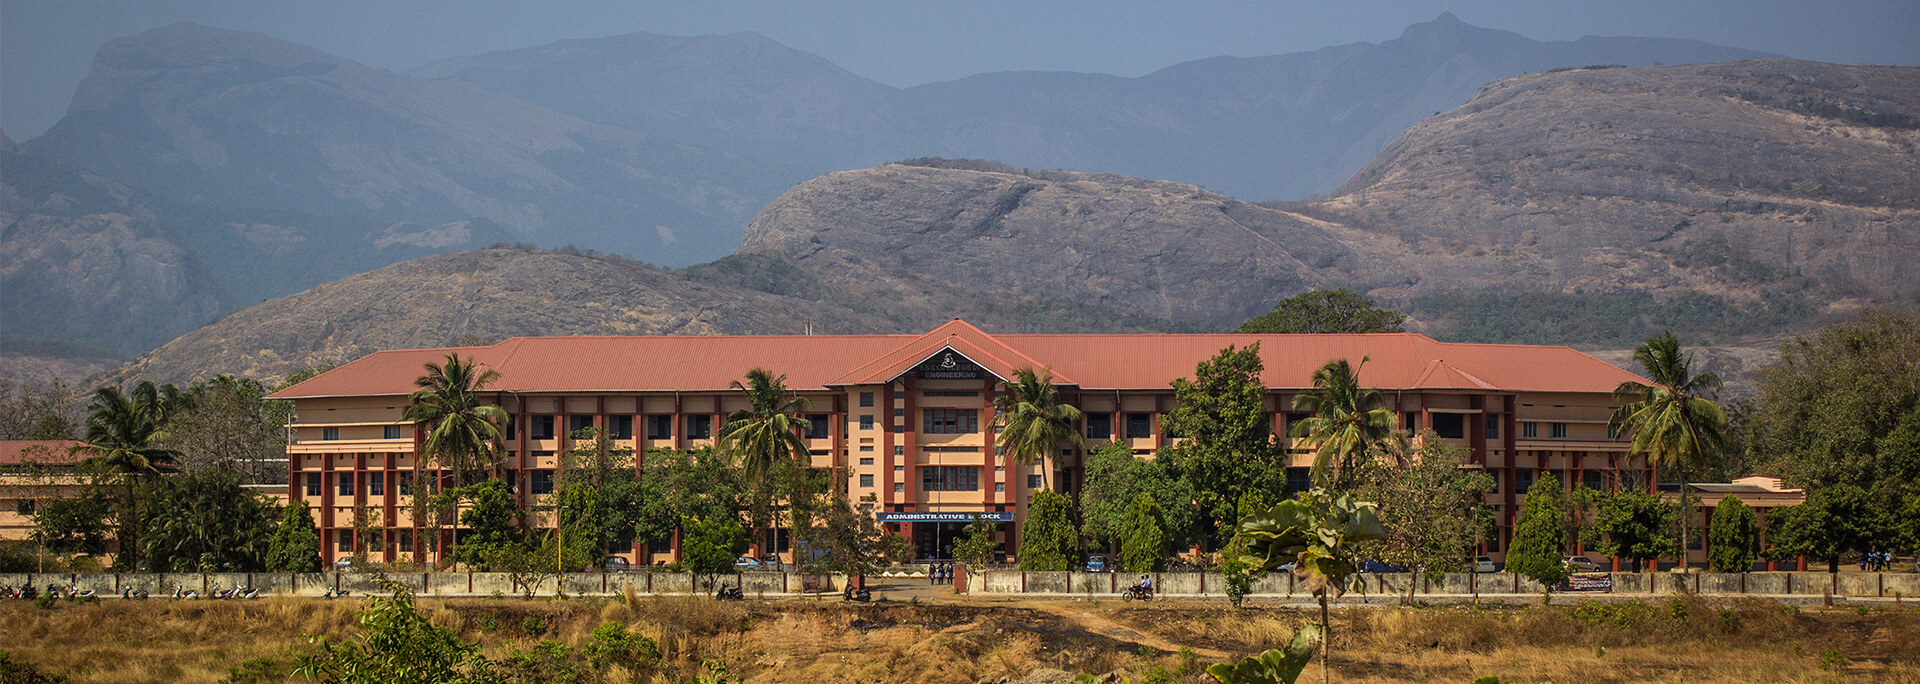 NSS COLLEGE OF ENGINEERING - [NSSCE], PALAKKAD